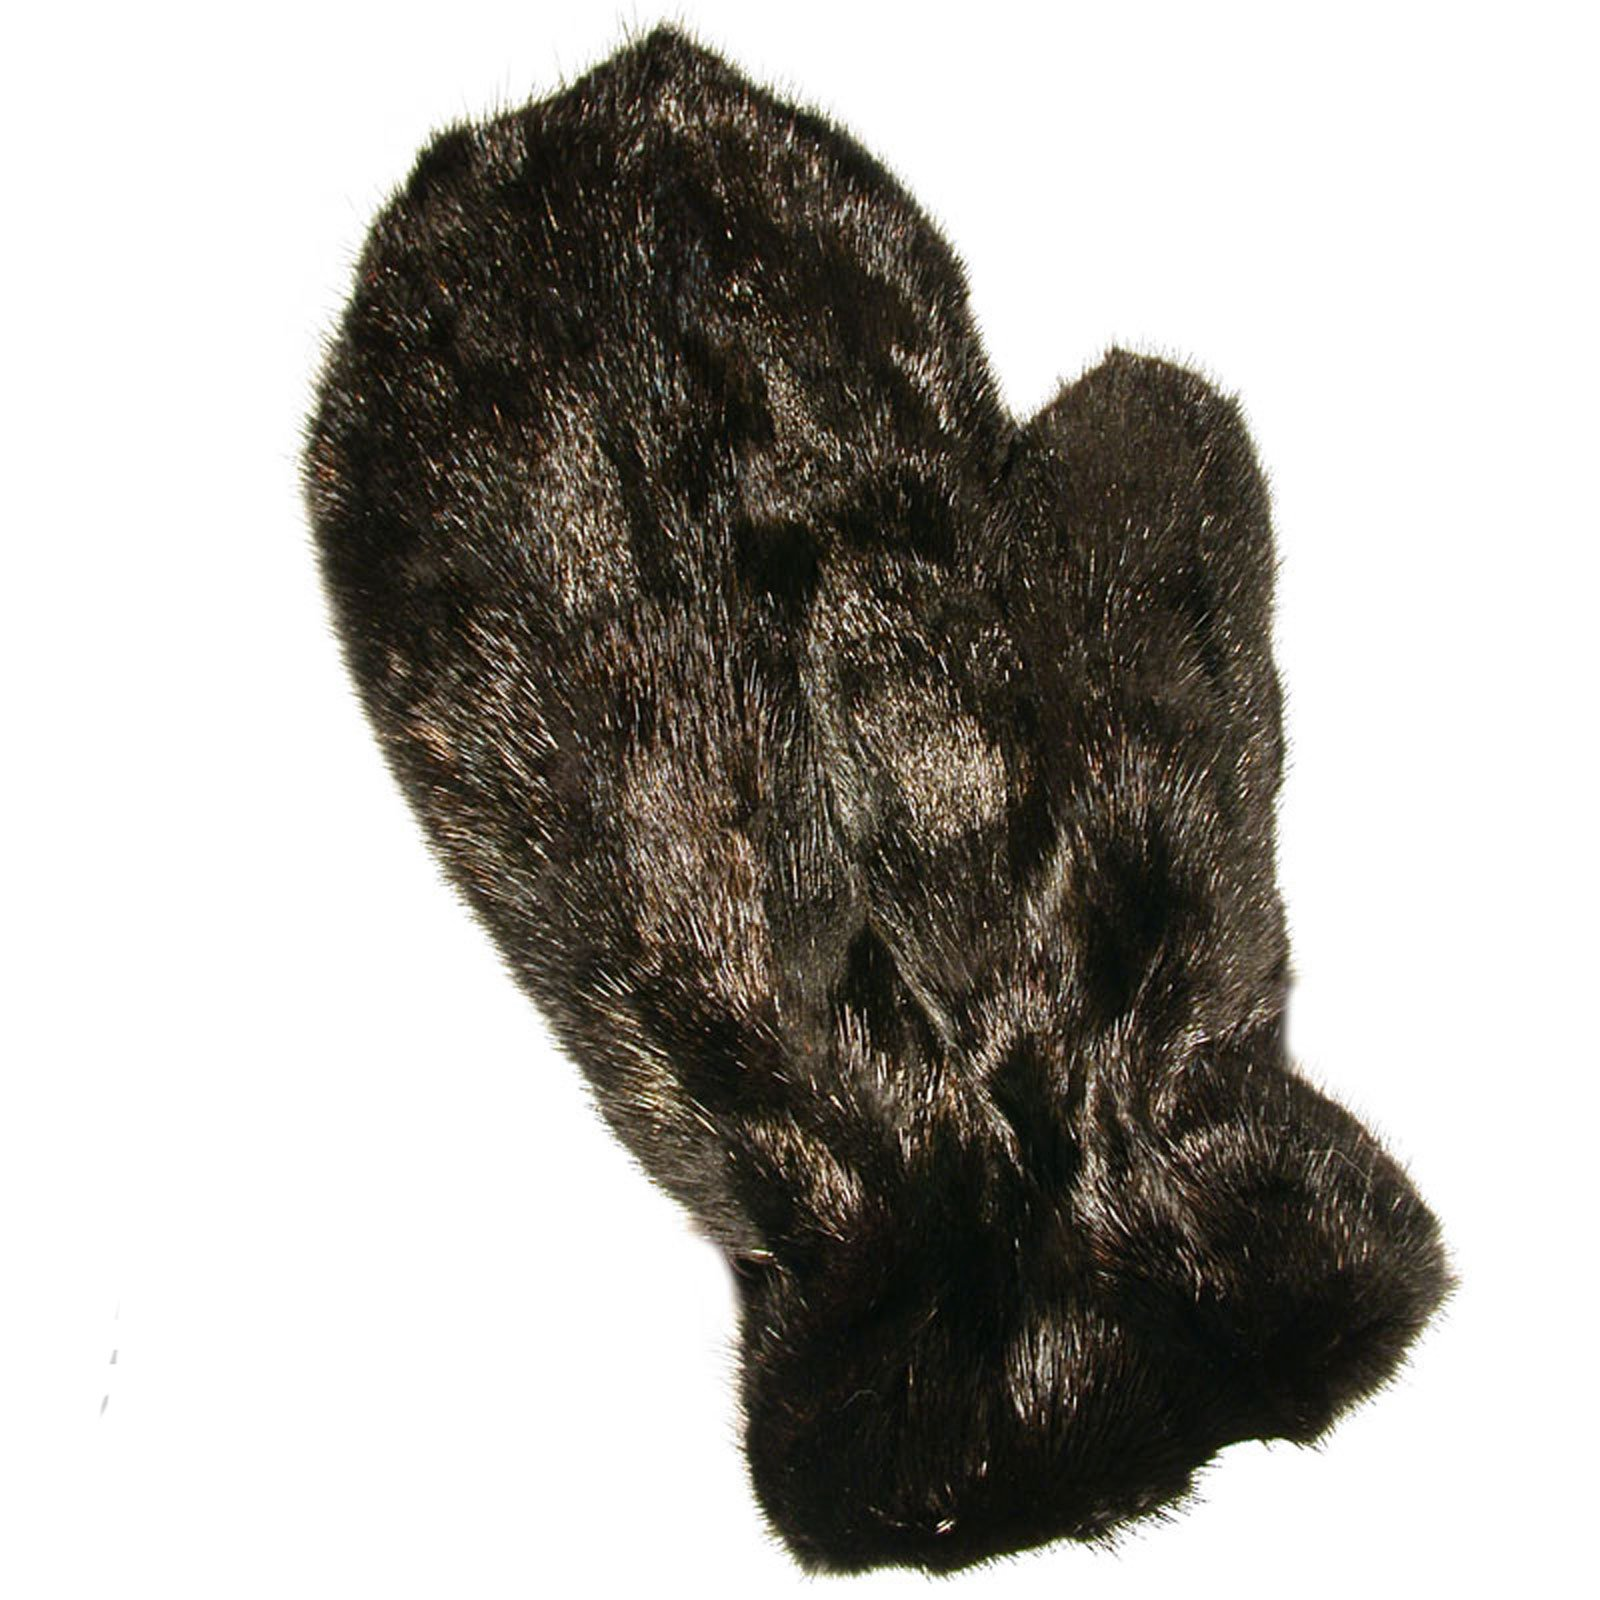 MinkgLove Mink Strips Massage Glove, Textured Yet Silky Smooth Feel, Ranch Black Color, Hand Tailored, Unisex, One Size - Double Sided Fur